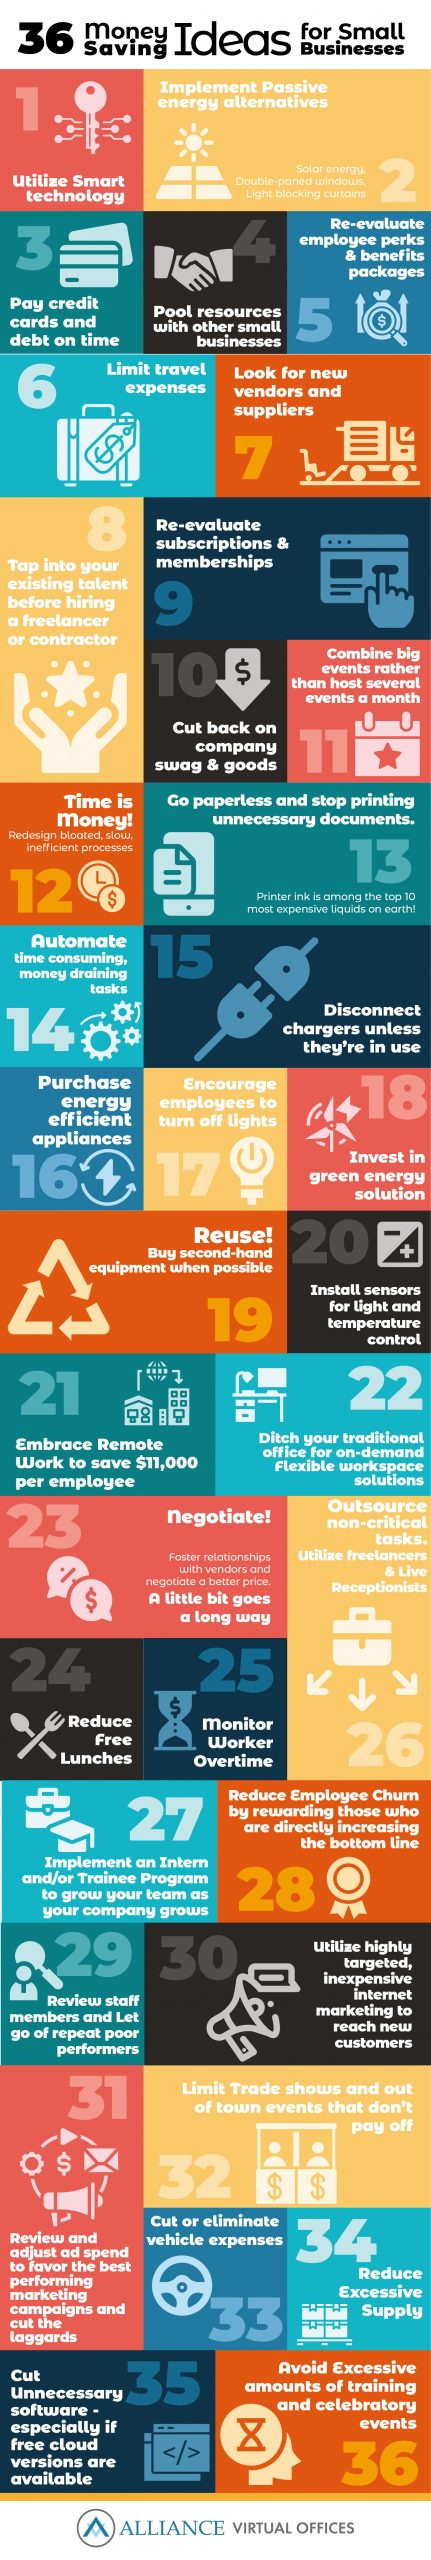 """Infographic: """"36 Money Saving Ideas for Small Businesses"""